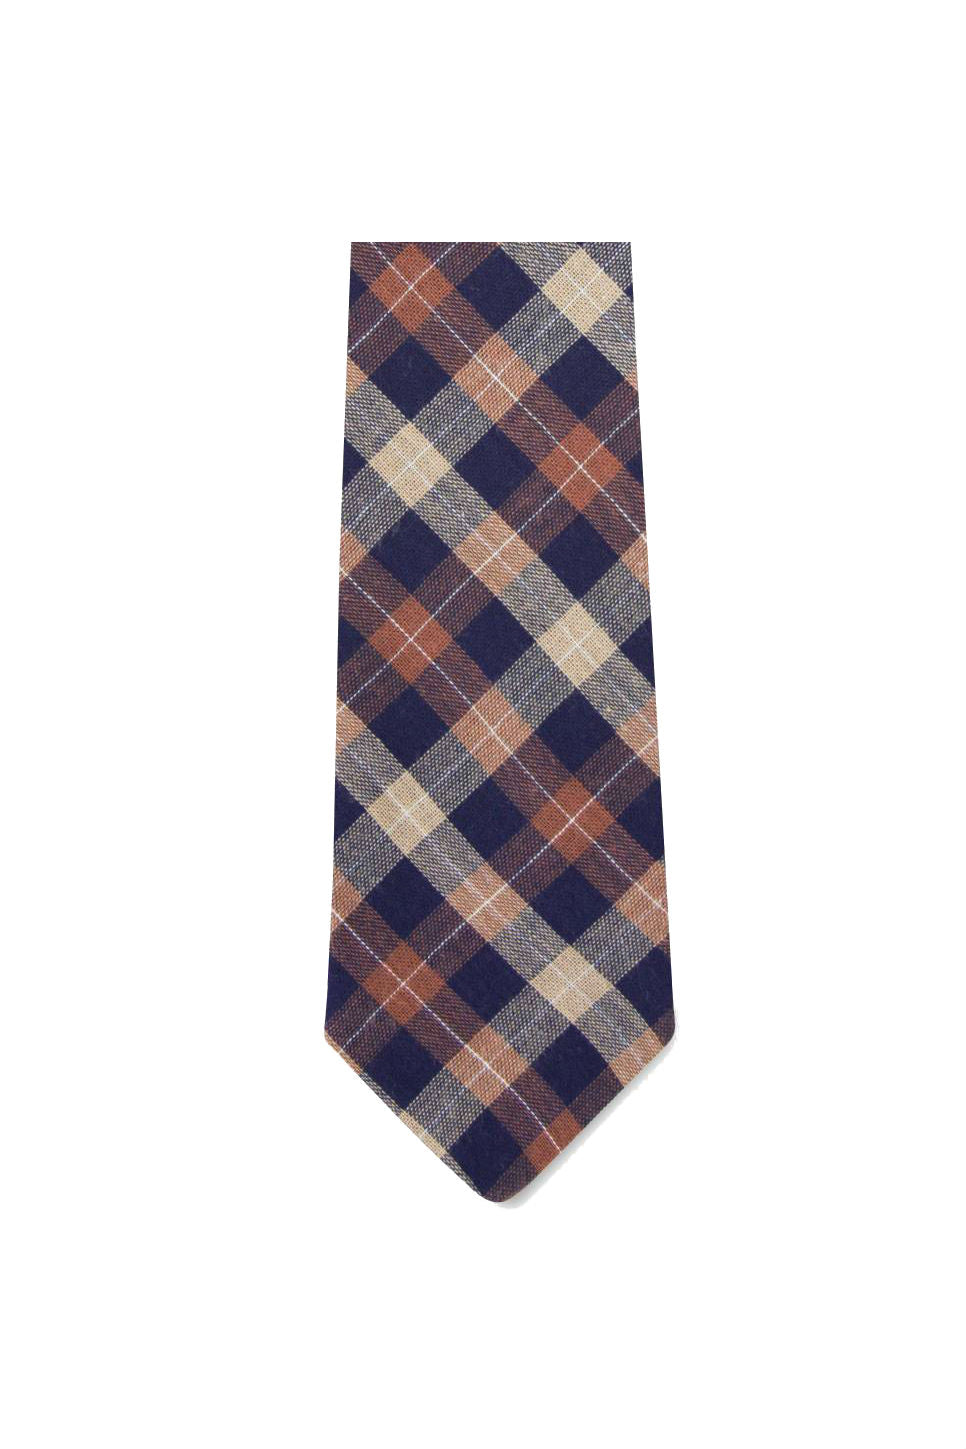 Pocket Square Clothing - The Emerson Tie - Navy/Orange Check